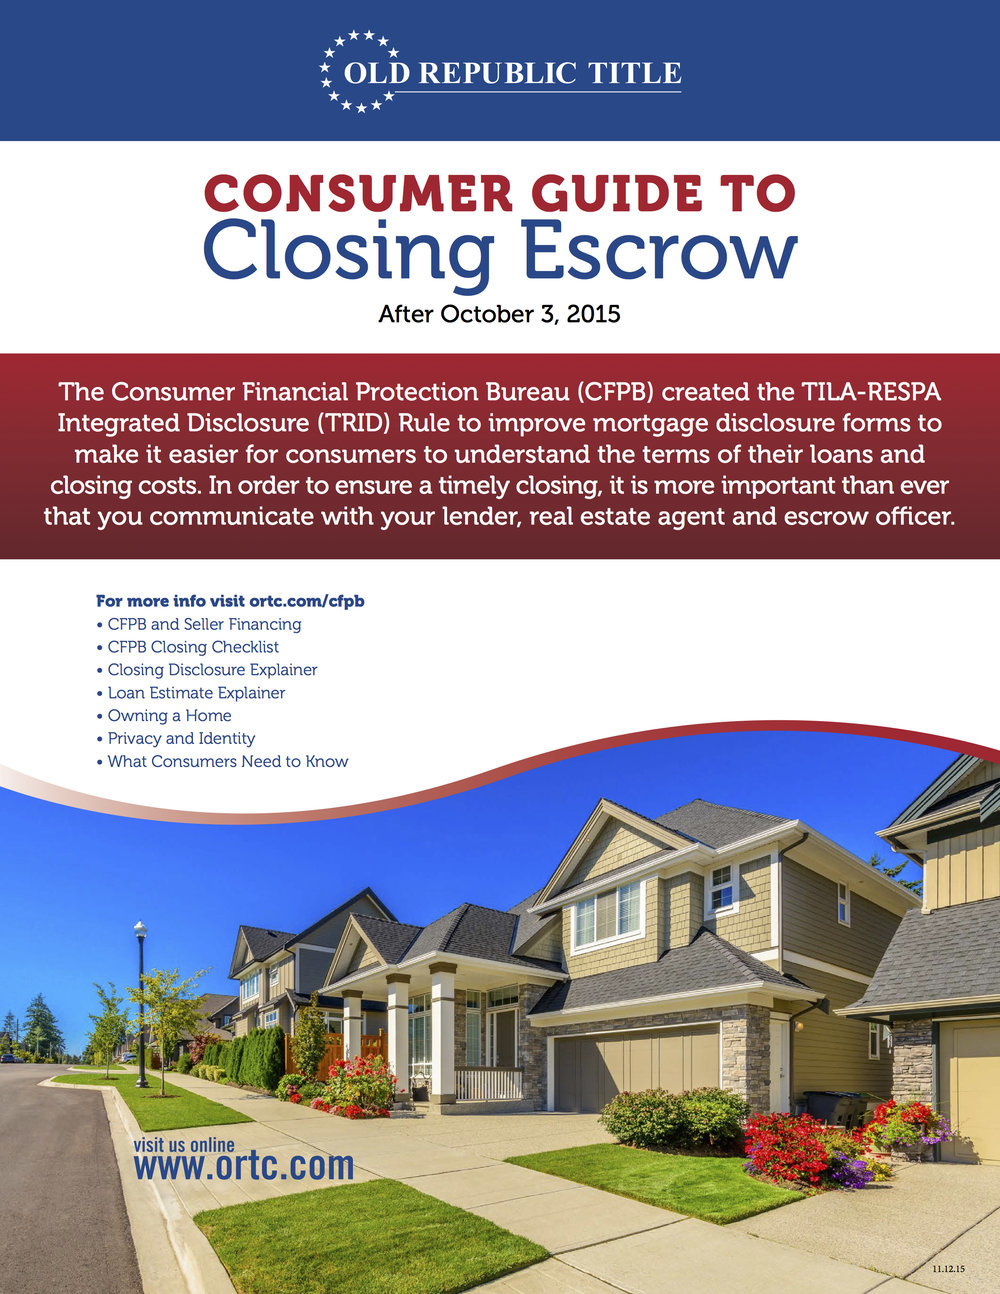 CONSUMER GUIDE TO Closing Escrow1.jpg